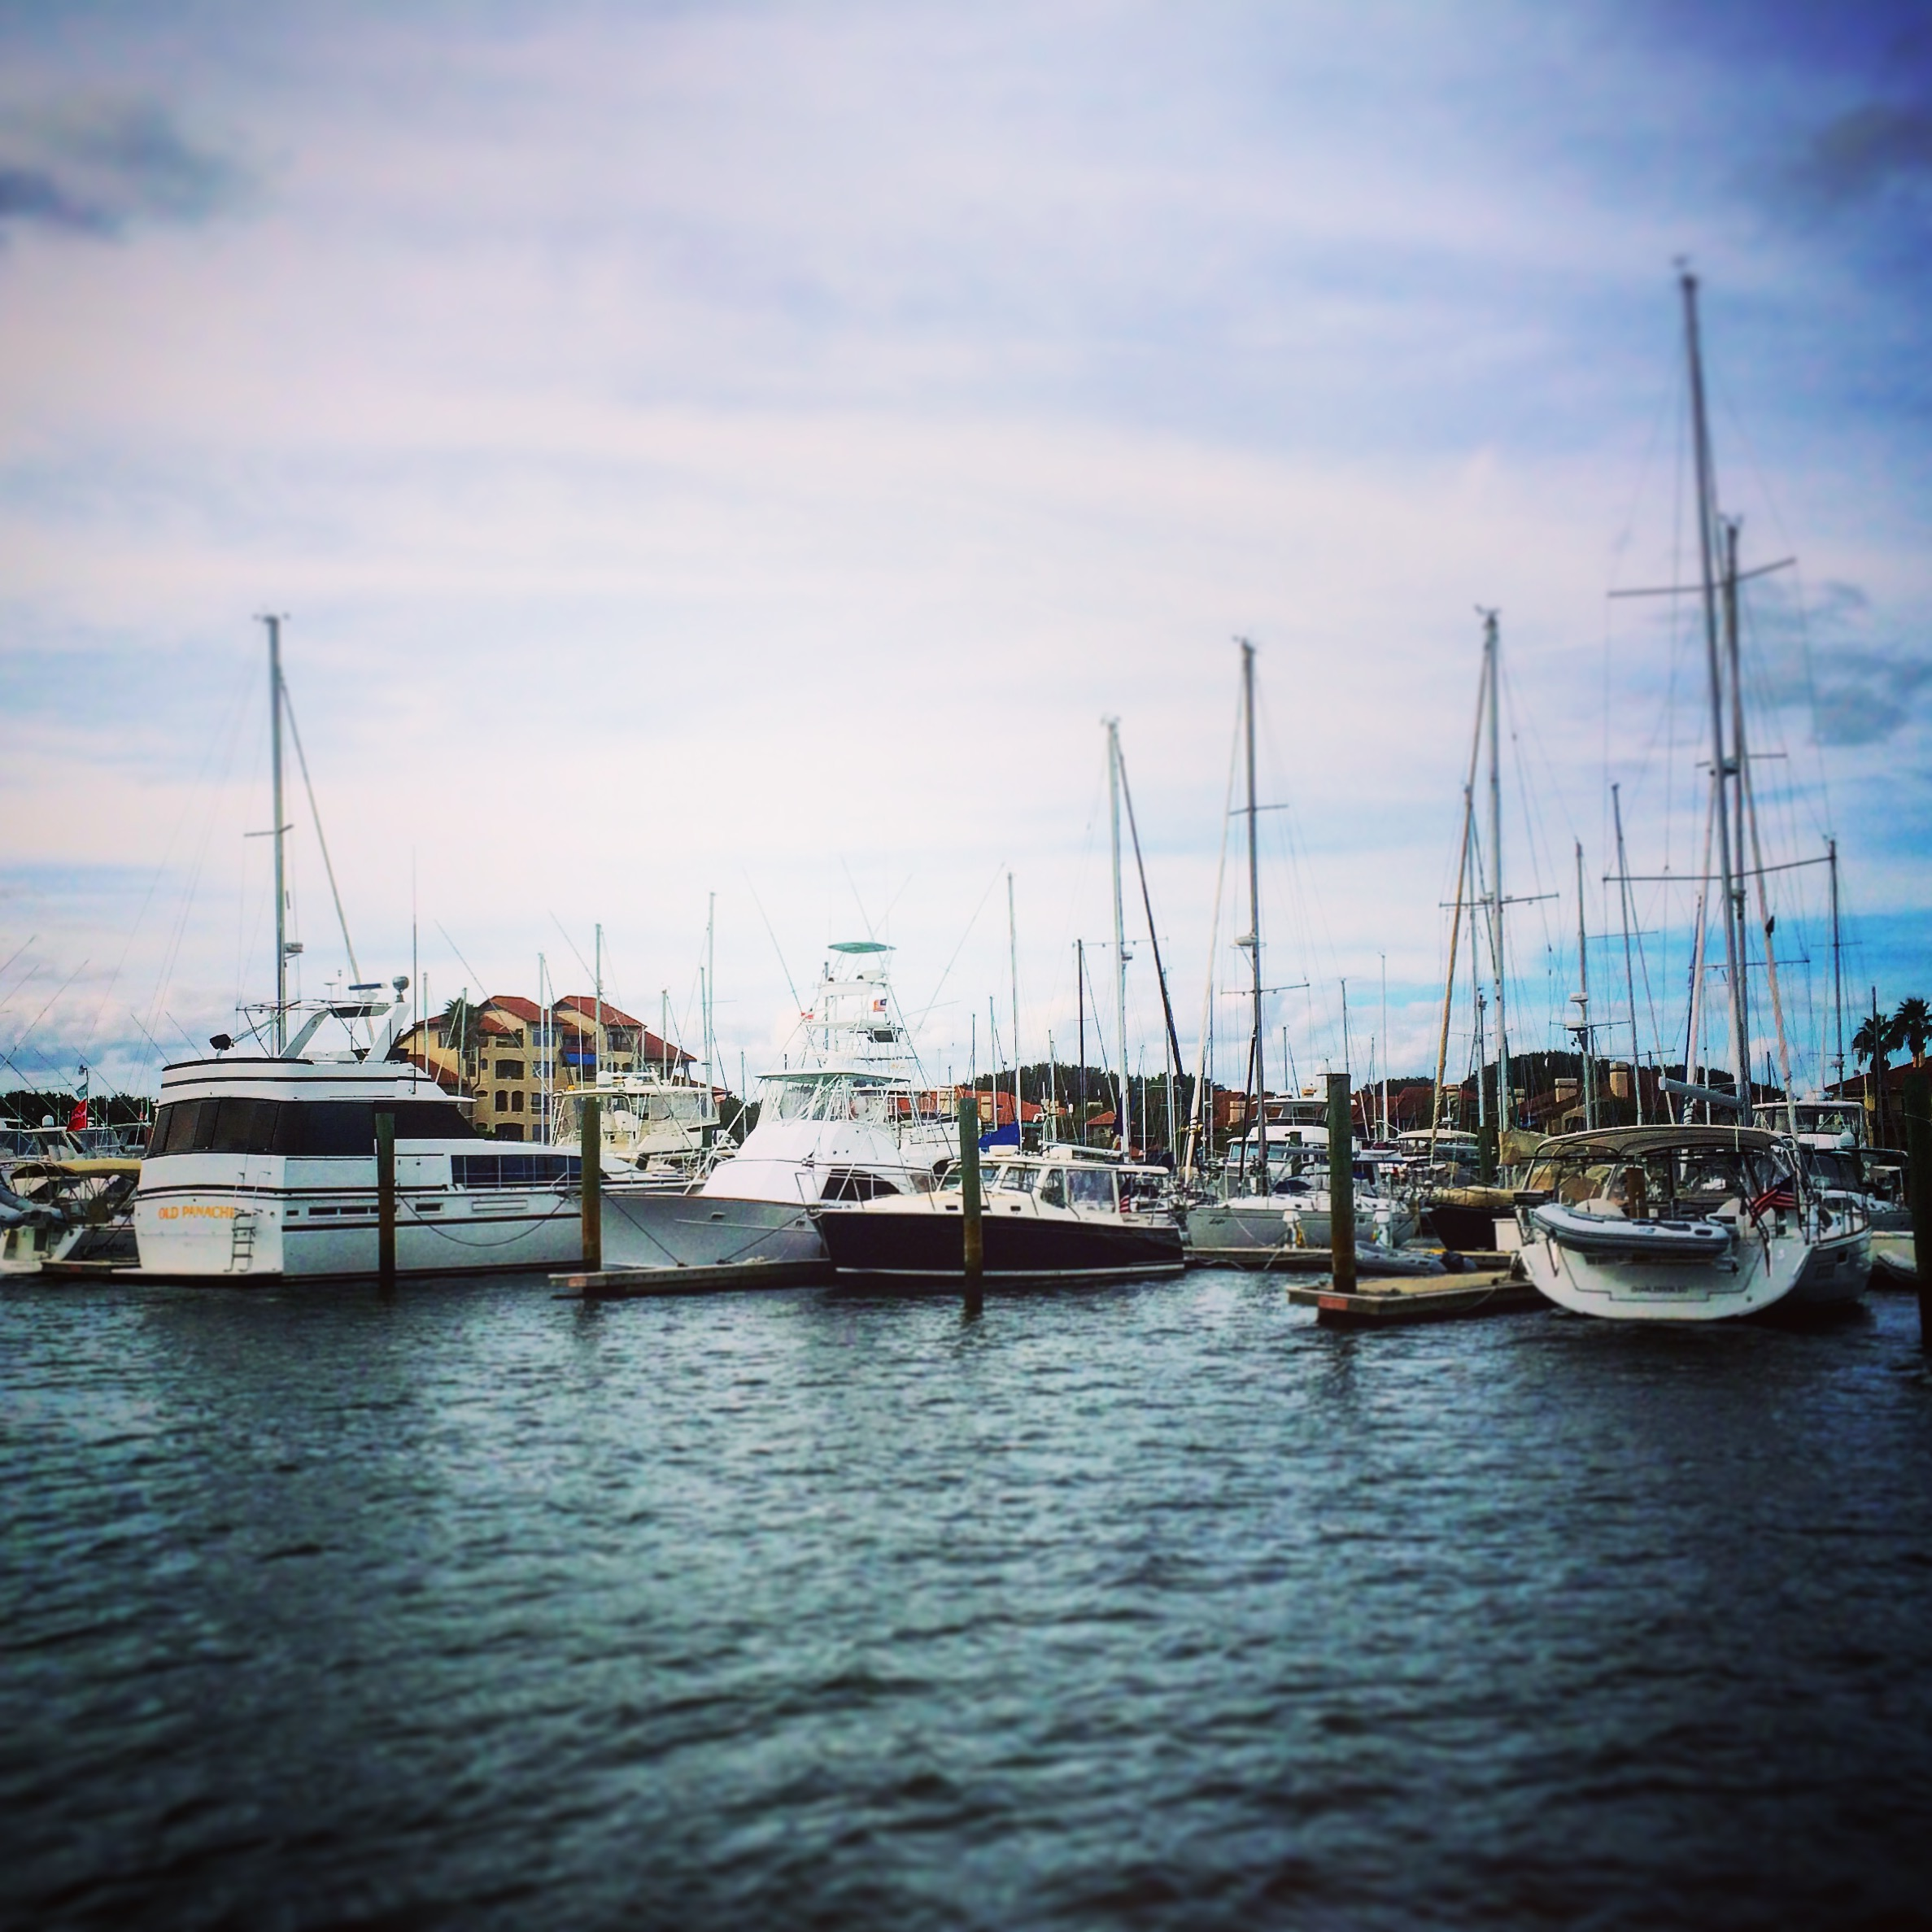 Boats at Camachee Cove Yacht Club , St. Augustine